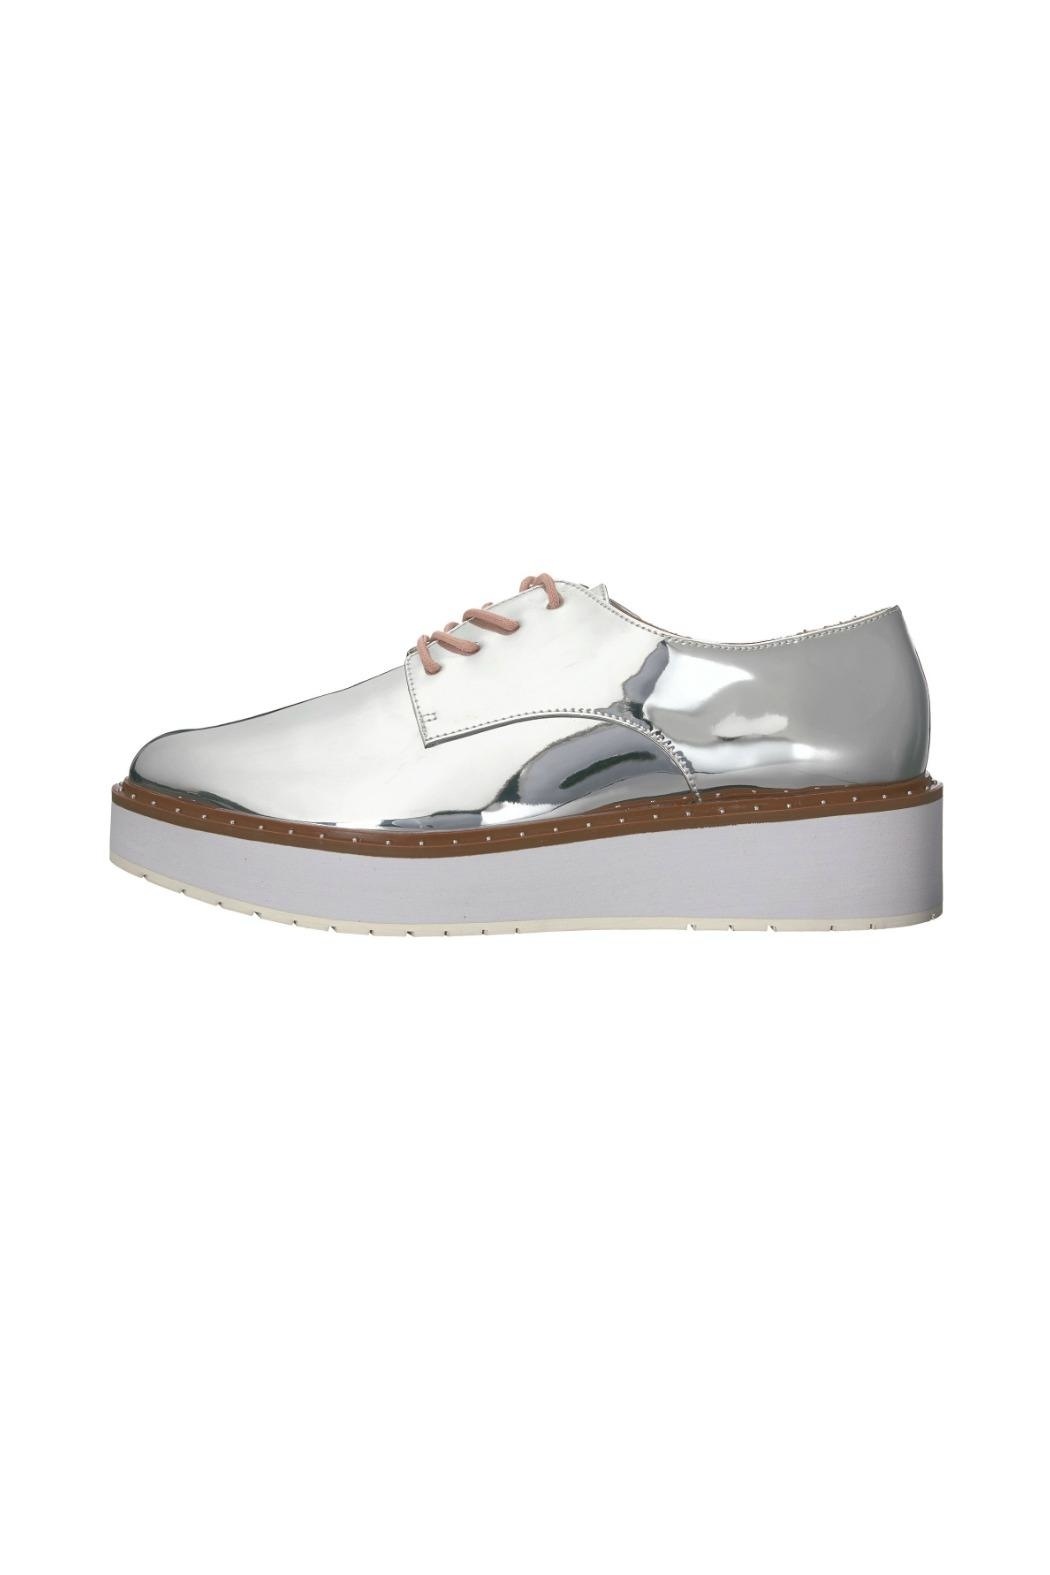 Chinese Laundry Cecilia Platform Oxford Shoes - Main Image